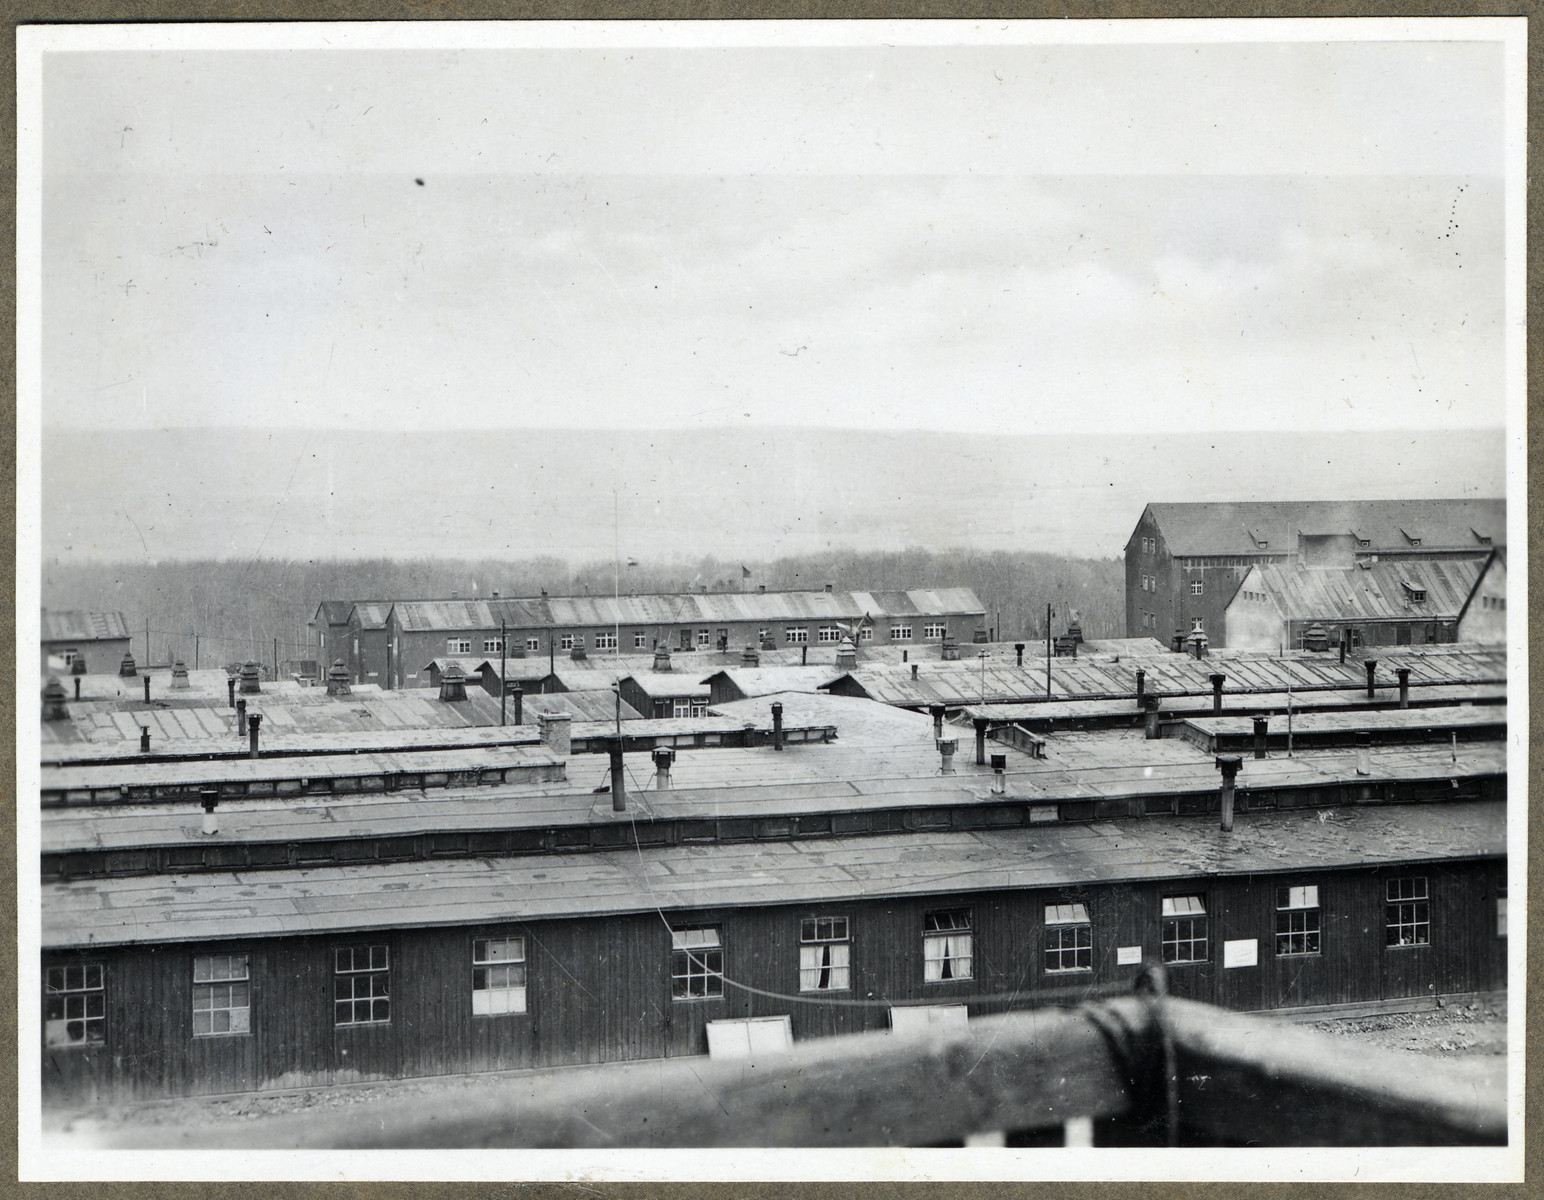 View of the barracks in the Buchenwald concentration camp.